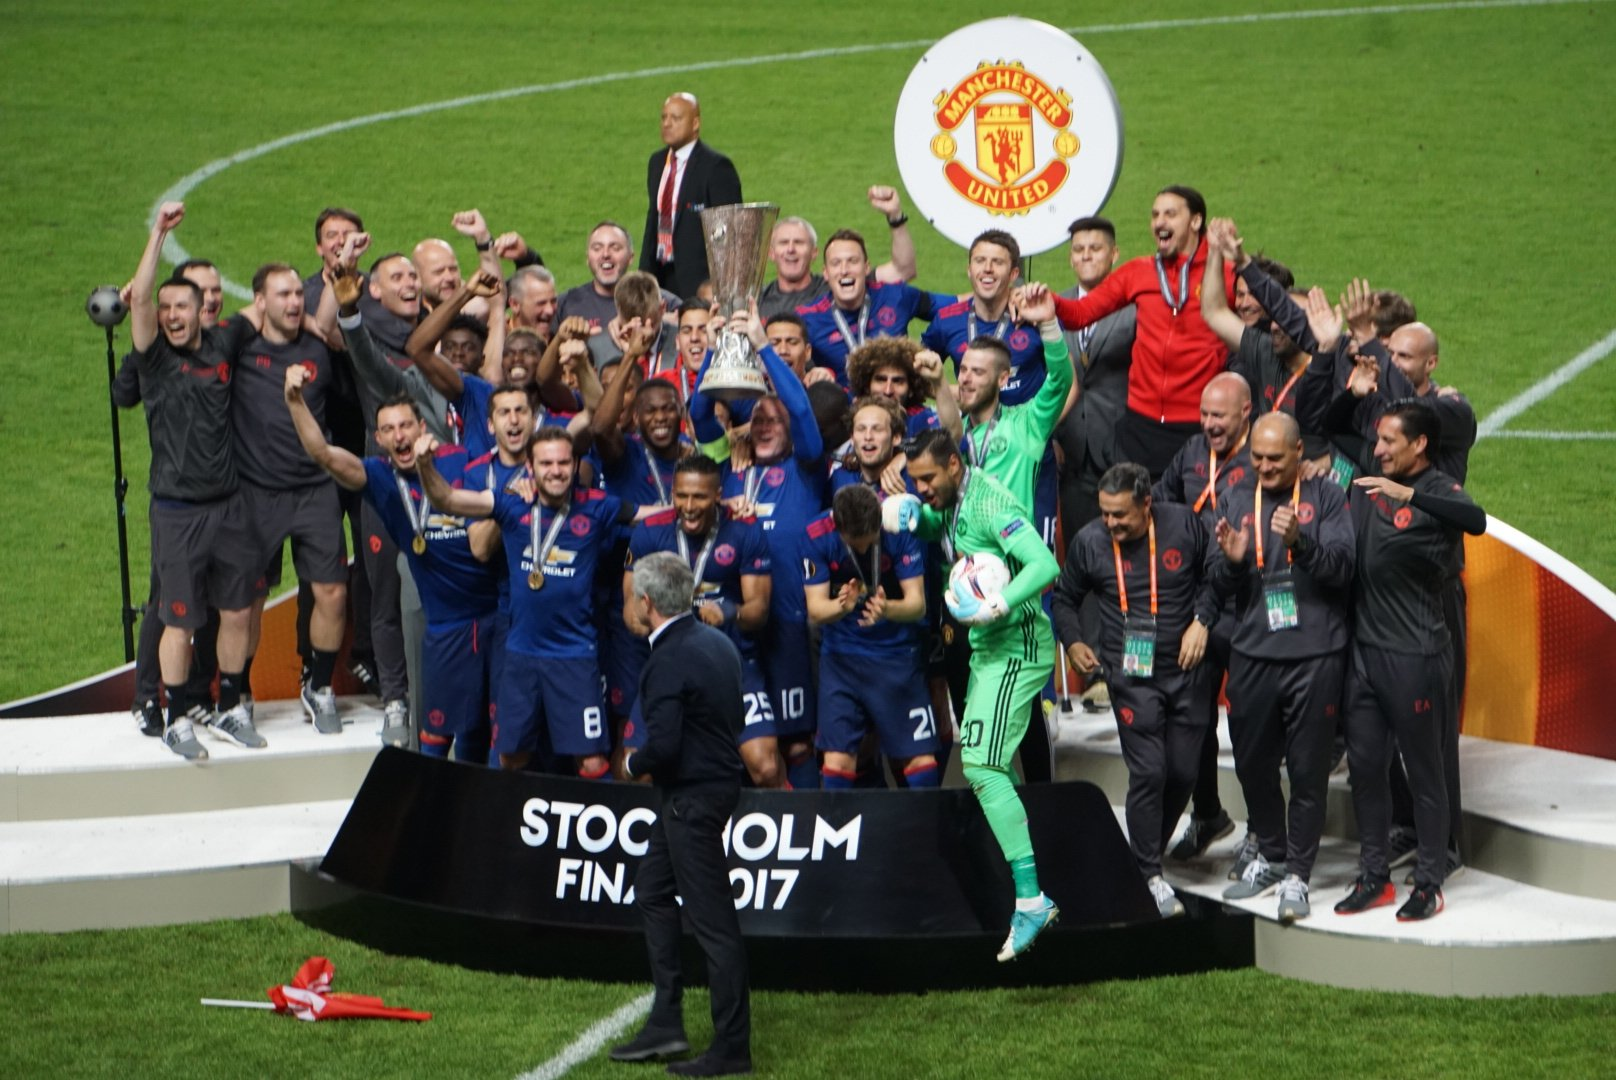 Manchester united defeated ajax 2 - 0 in the final of the 2016/2017 europa league to emerge winners and claim a spot